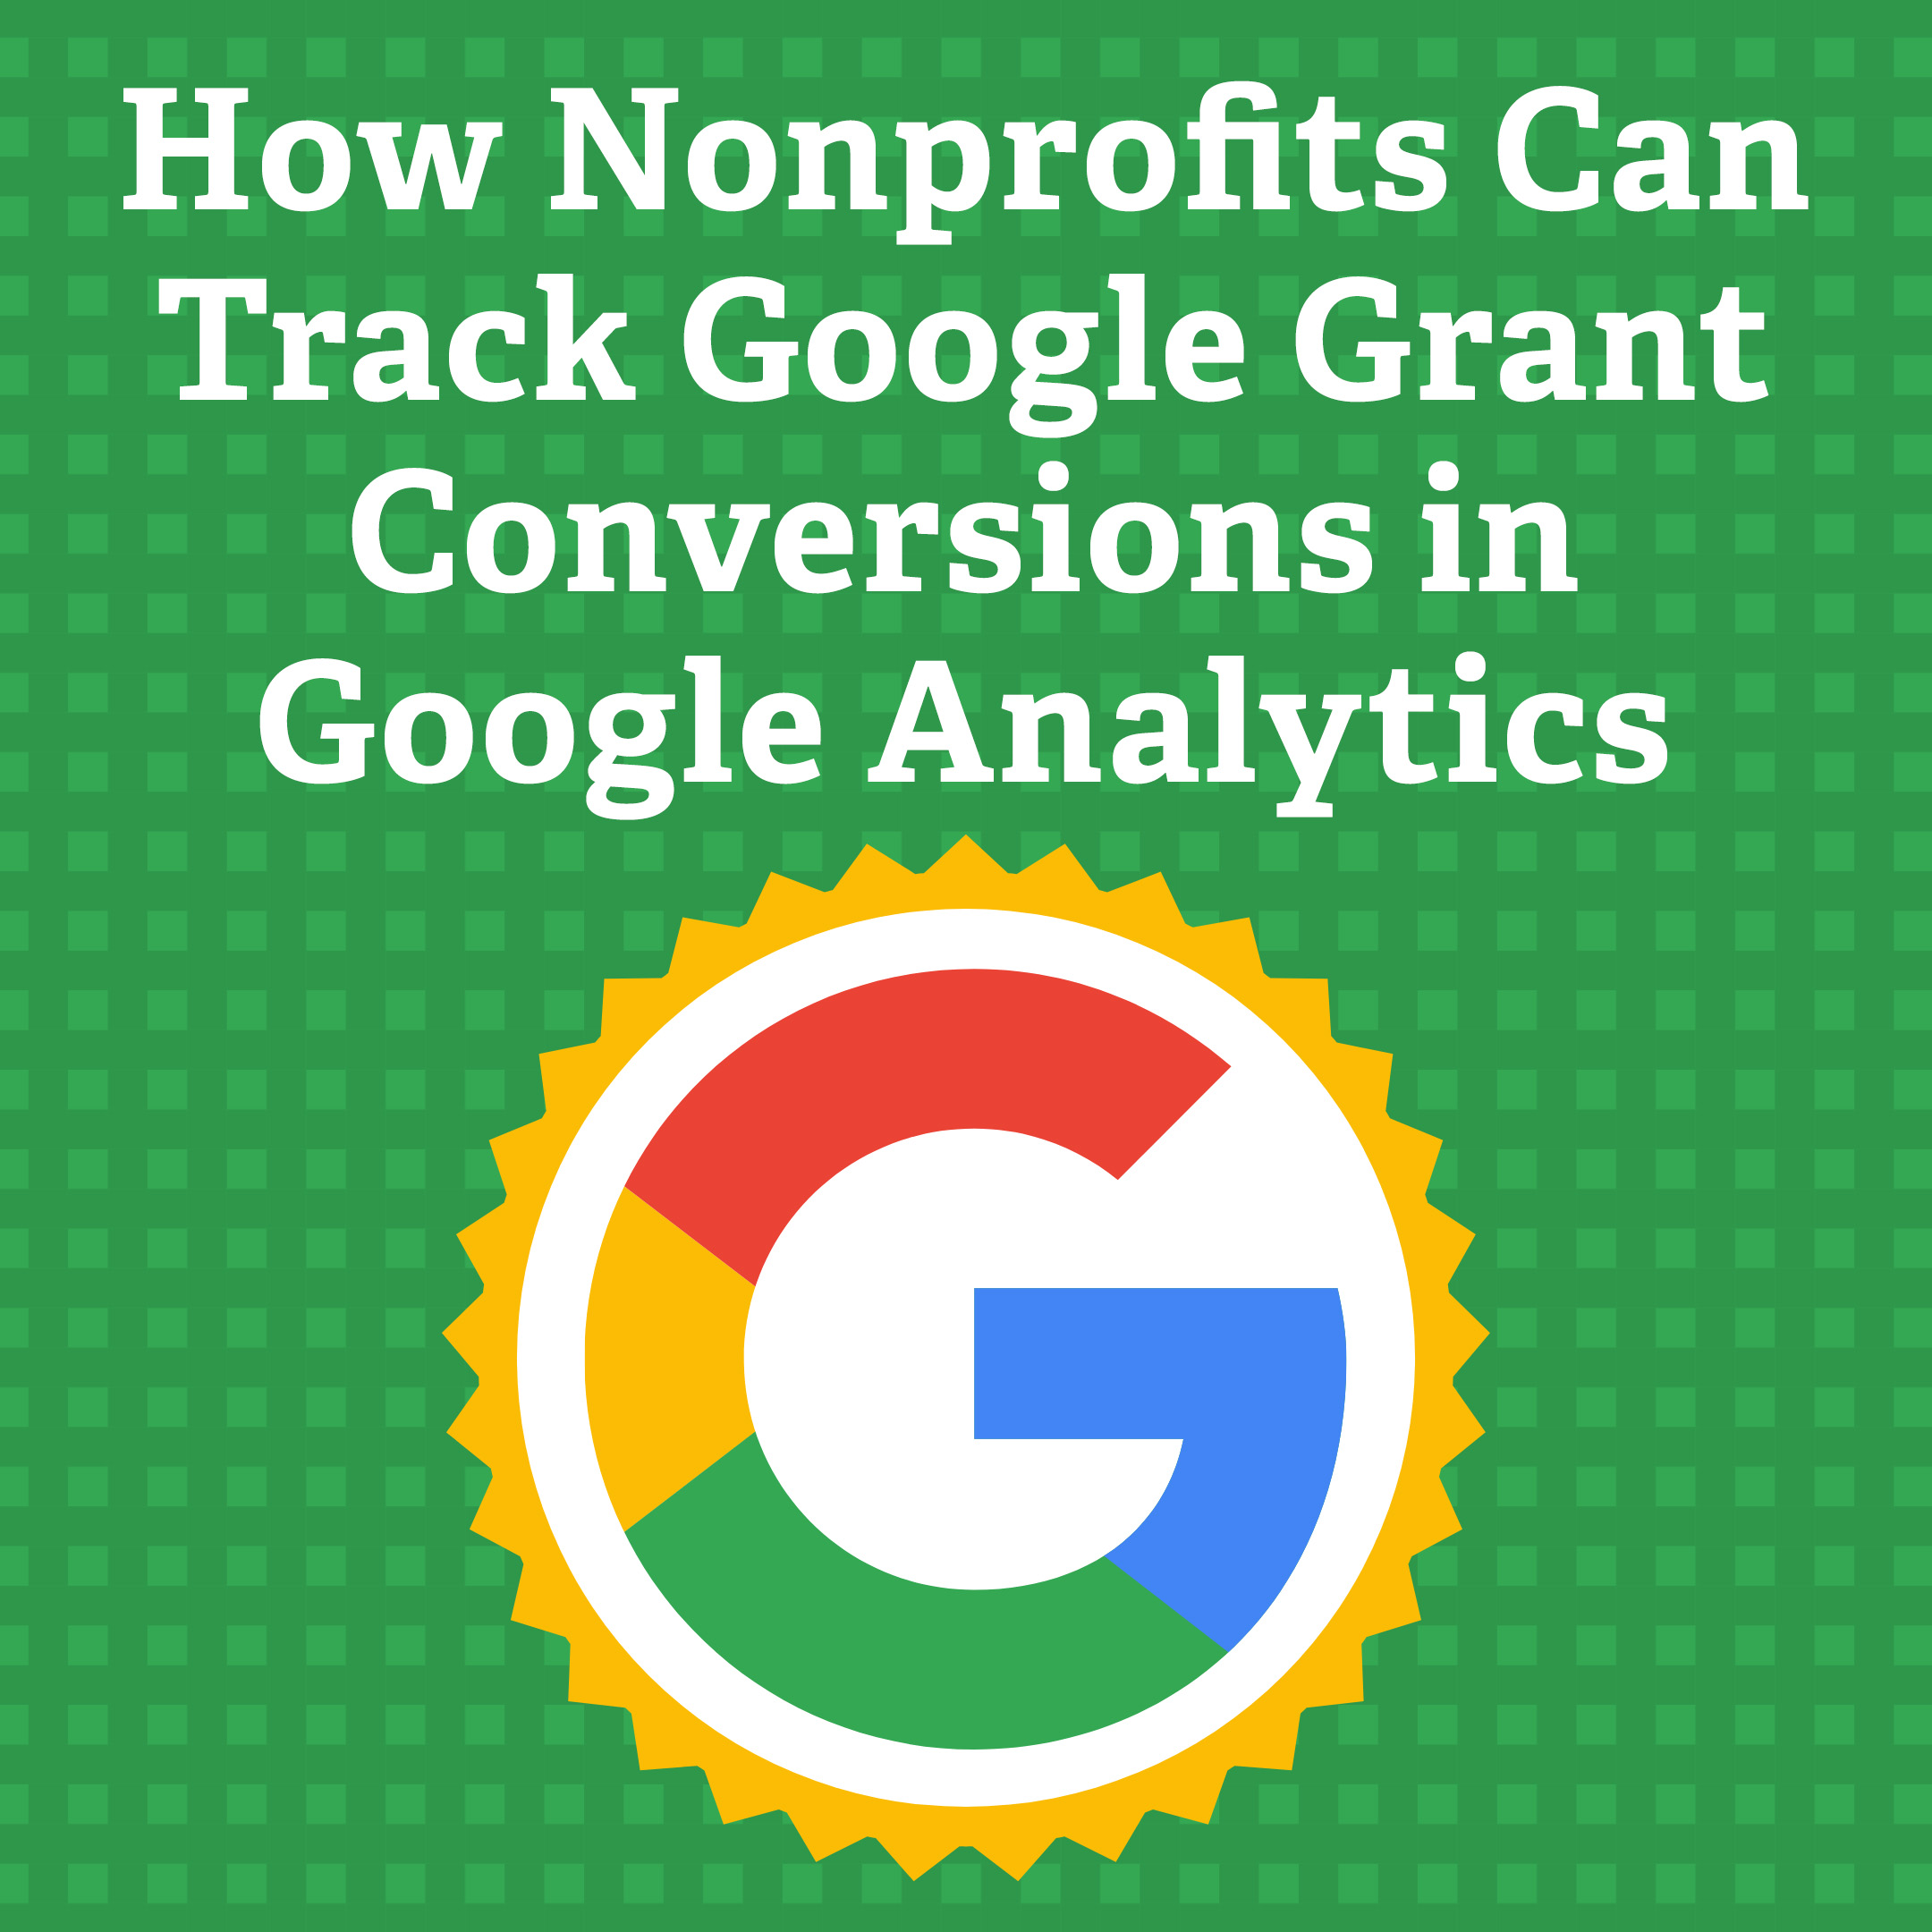 How Nonprofits Can Track Google Grant Conversions in Google Analytics